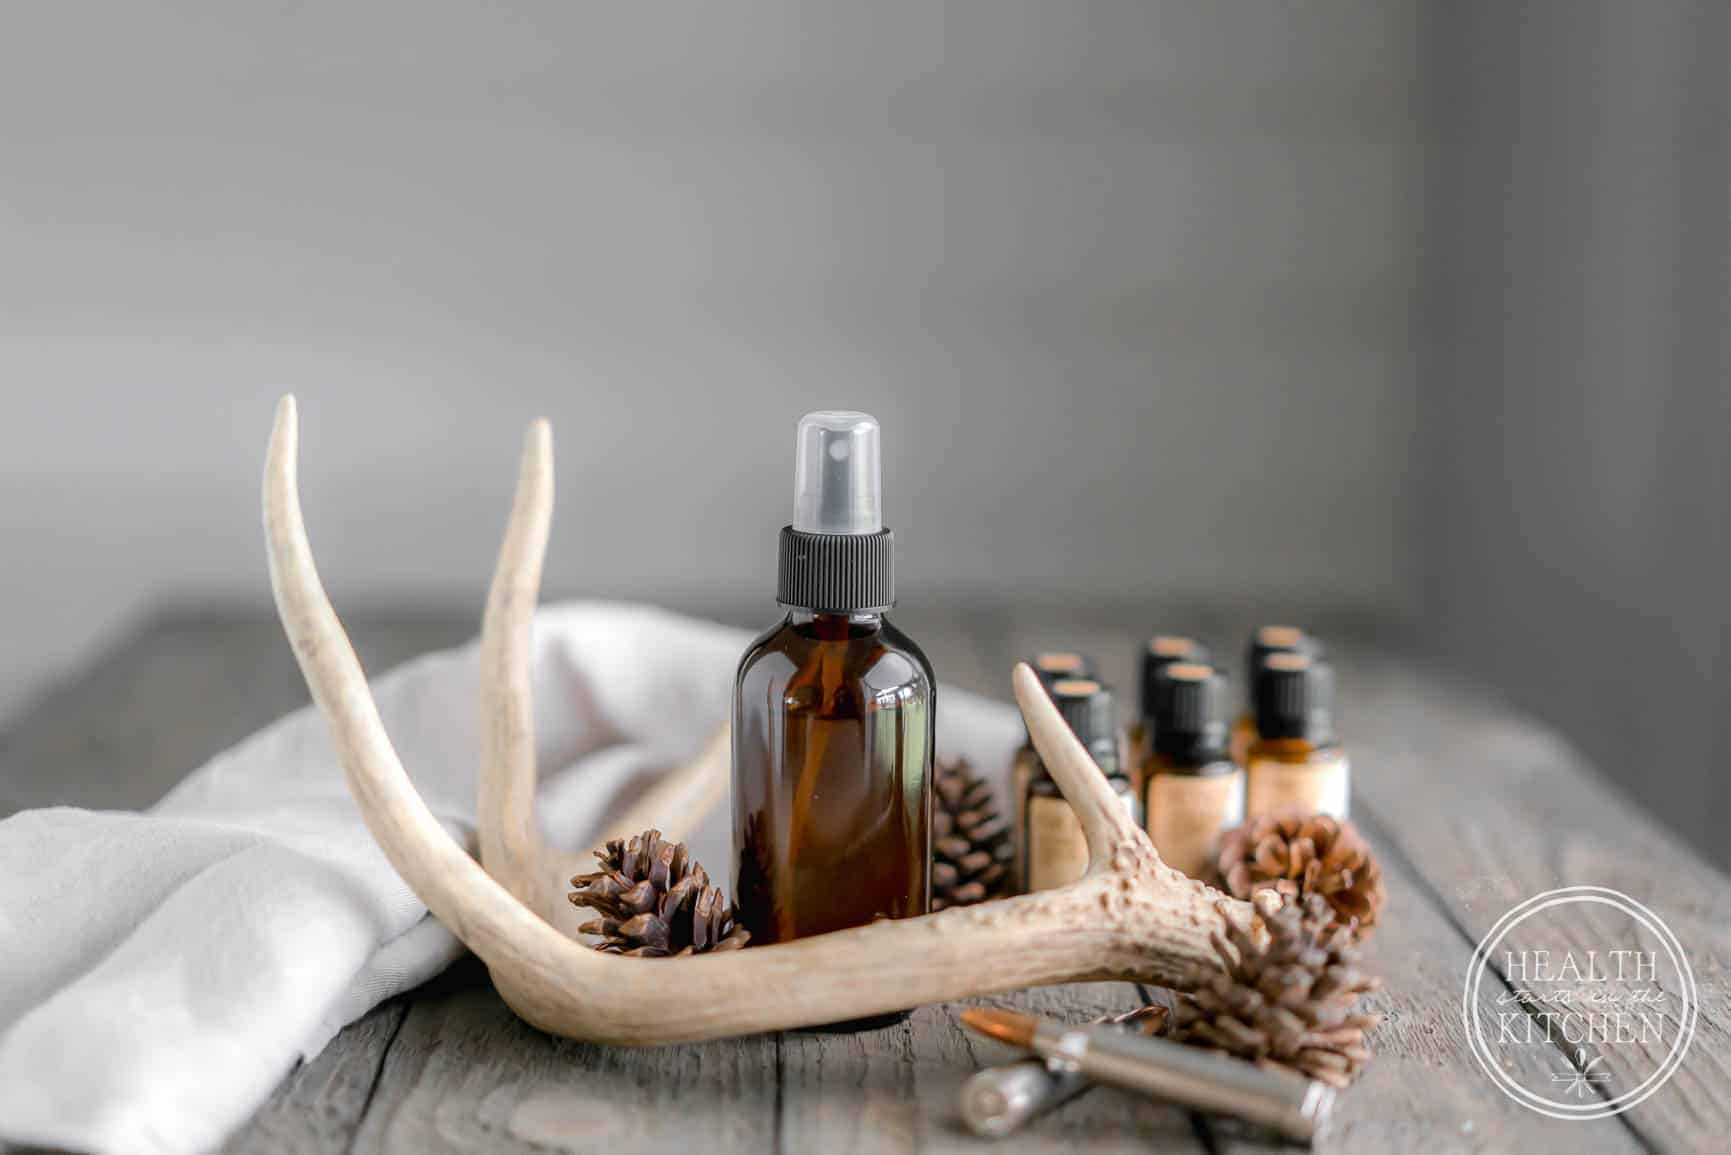 DIY Scent Away Hunting Spray made with Essential Oils